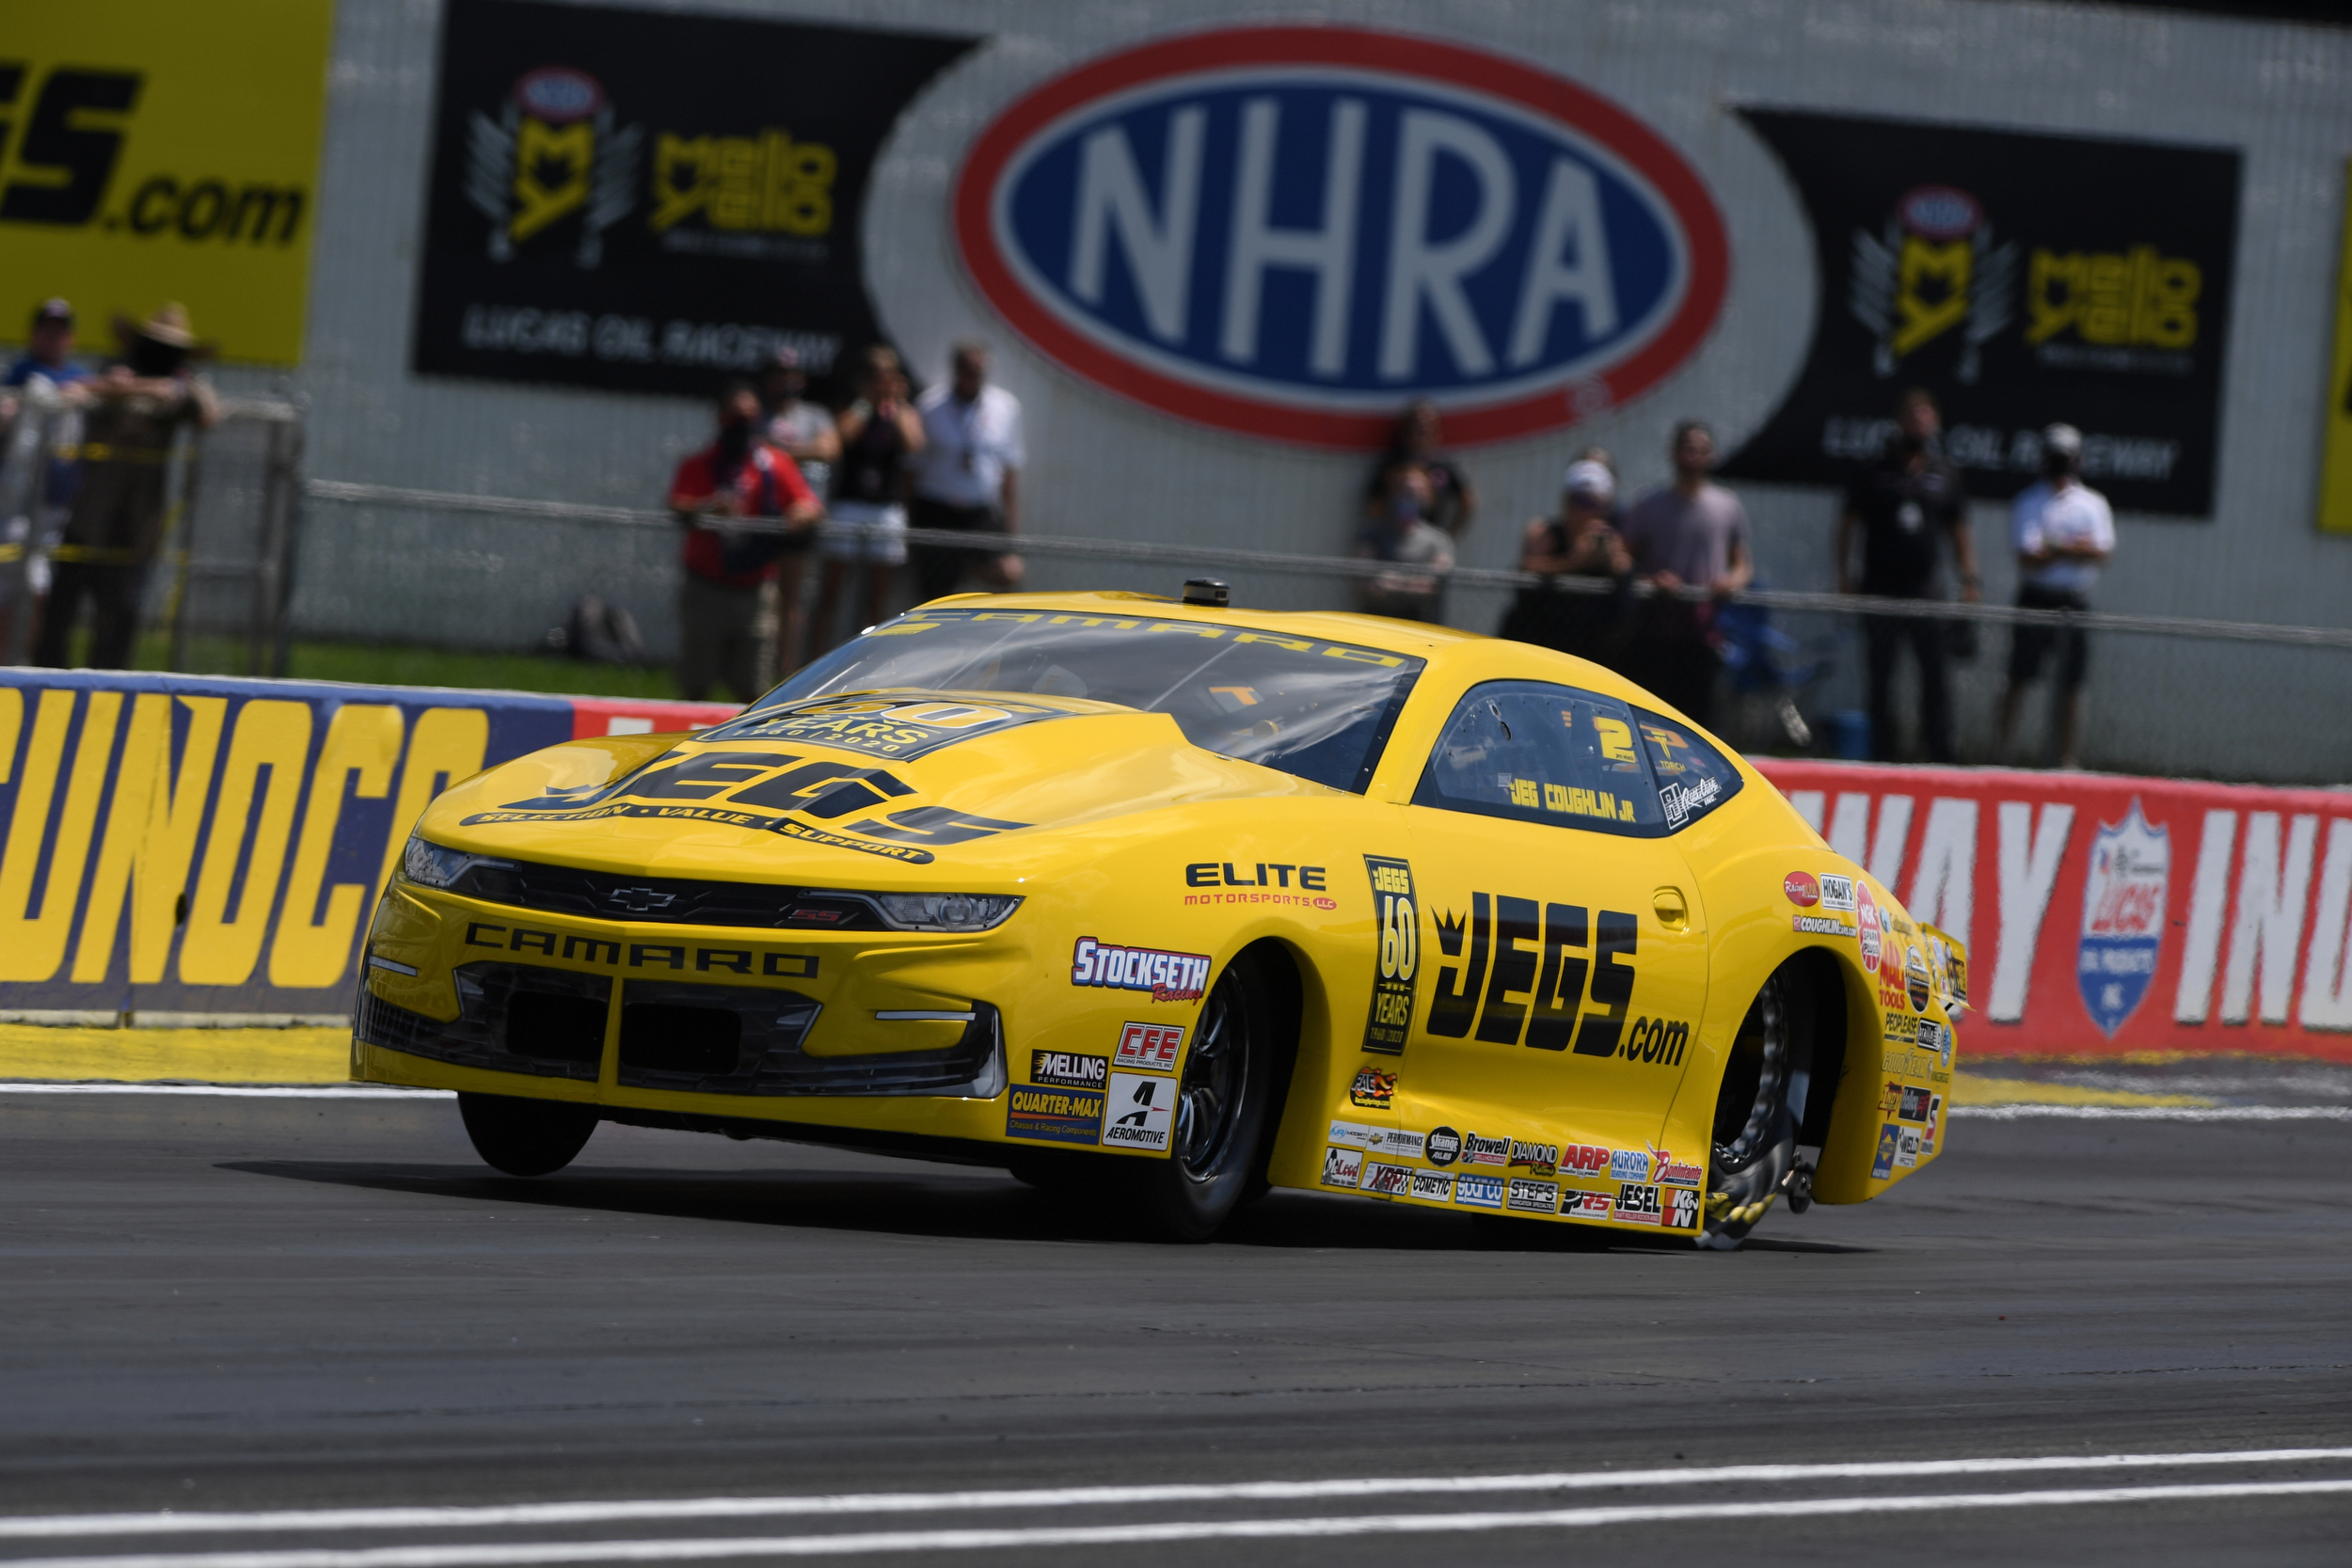 Elite Performance/JEGS Pro Stock driver Jeg Coughlin Jr. racing on Sunday at the Dodge NHRA Indy Nationals presented by Pennzoil